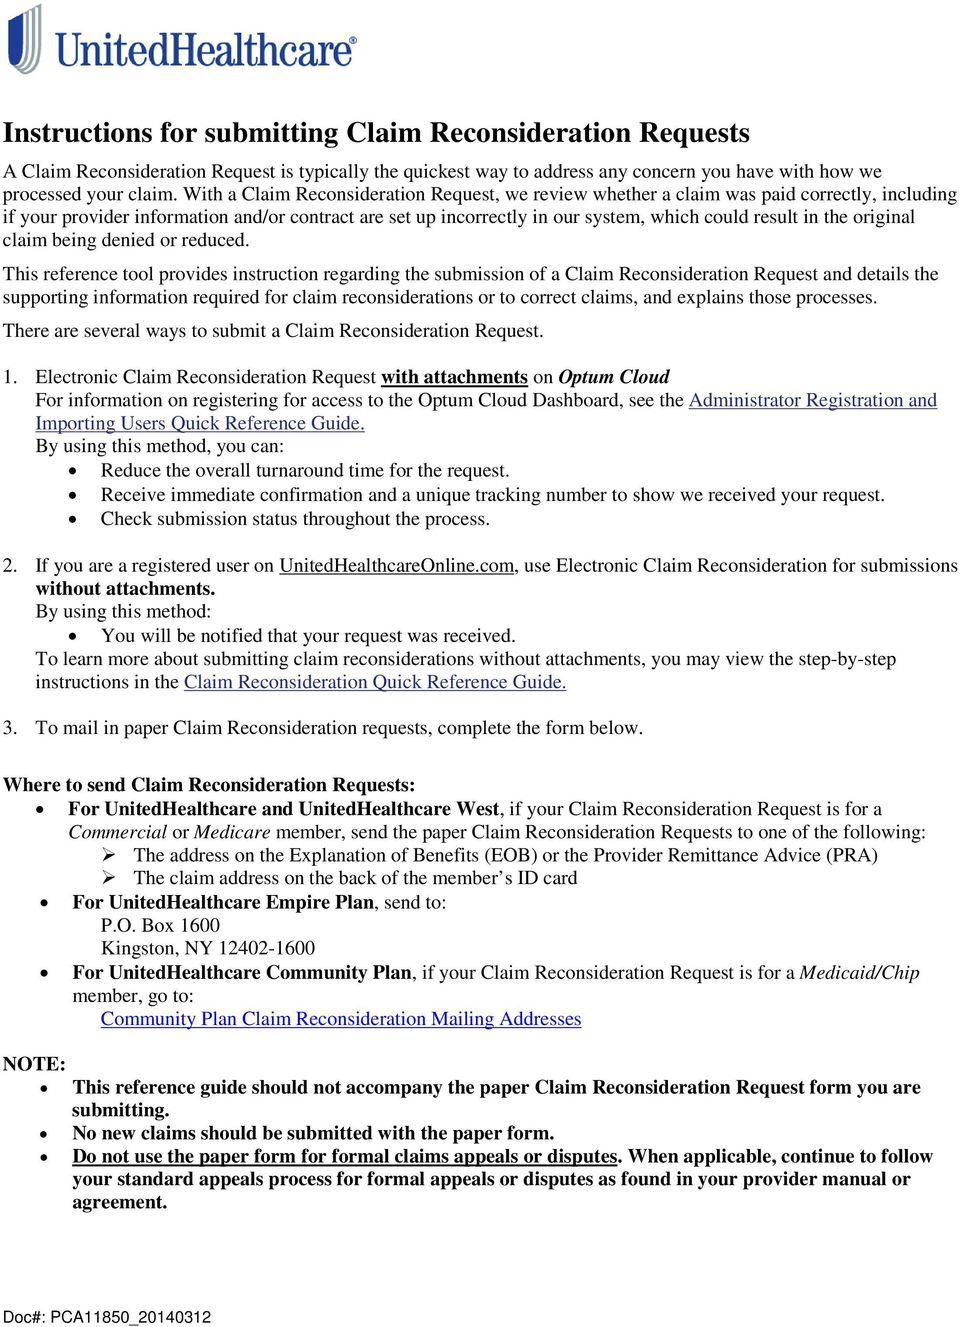 Instructions for submitting Claim Reconsideration Requests - PDF